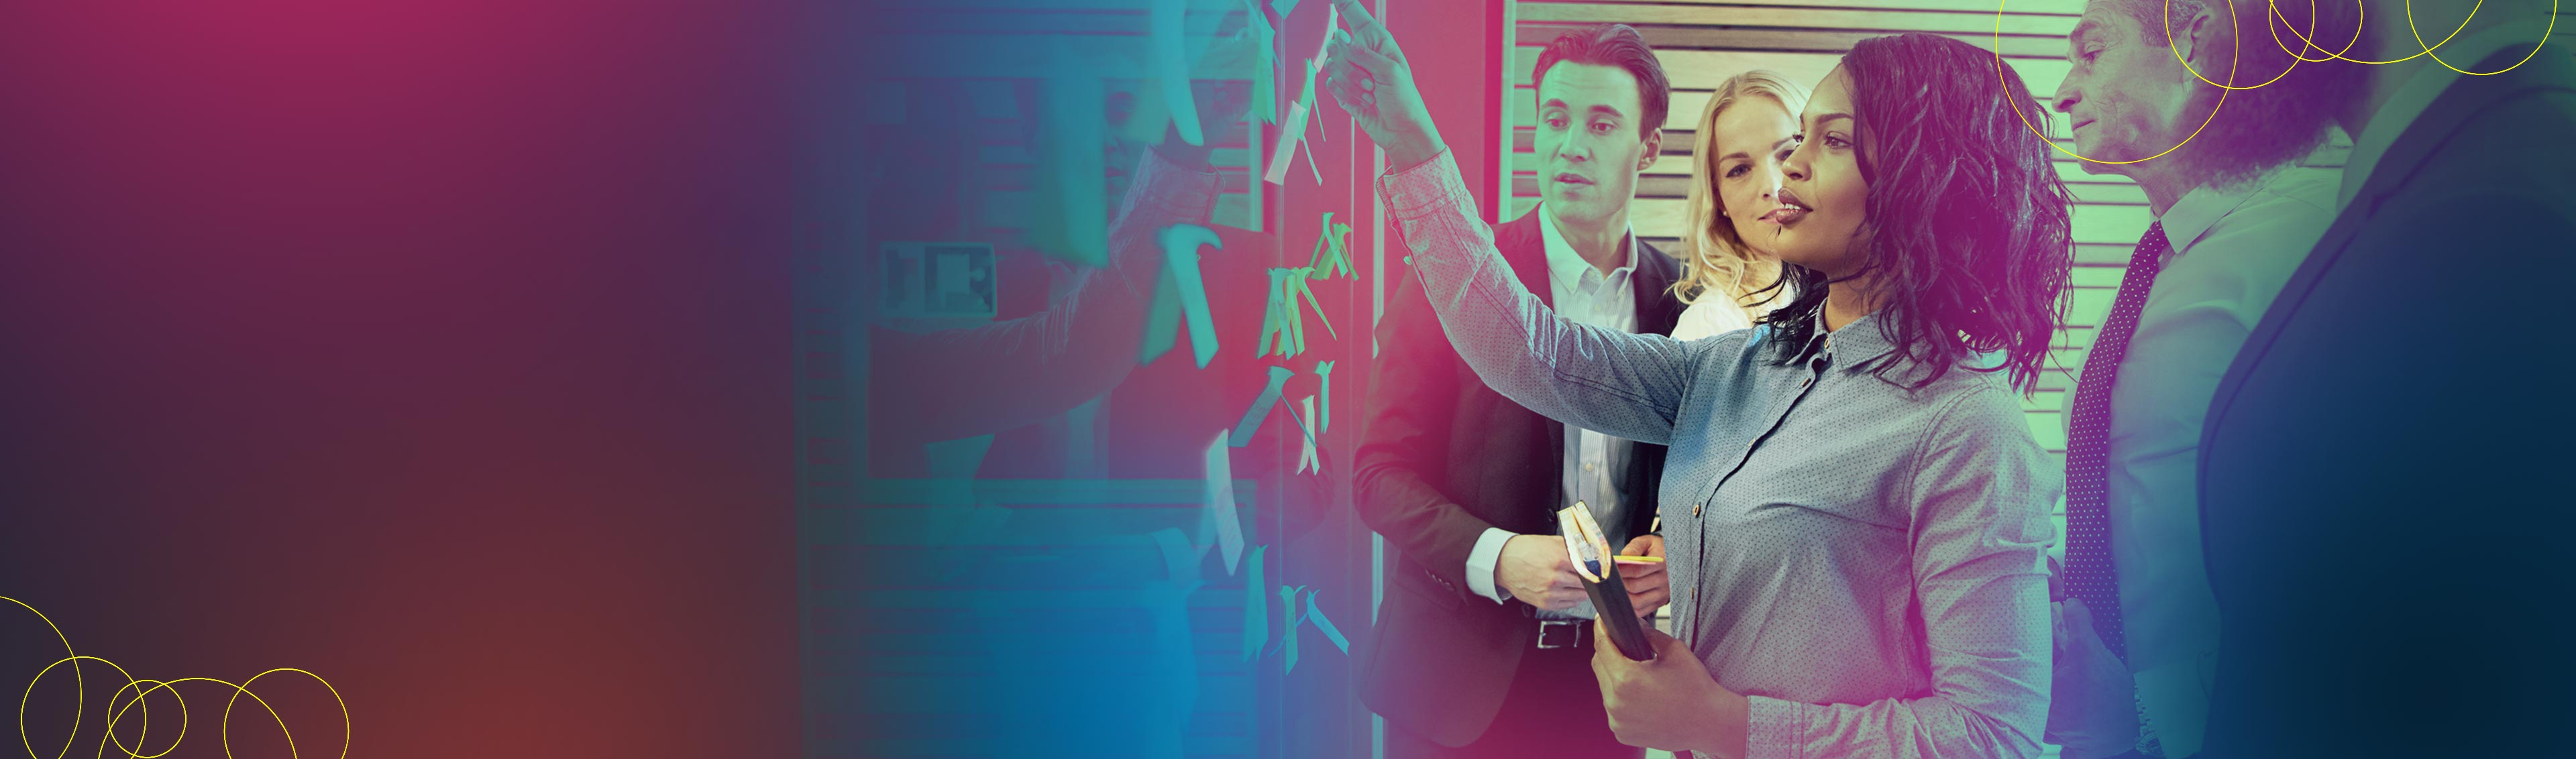 sales and marketing people touching digital screen